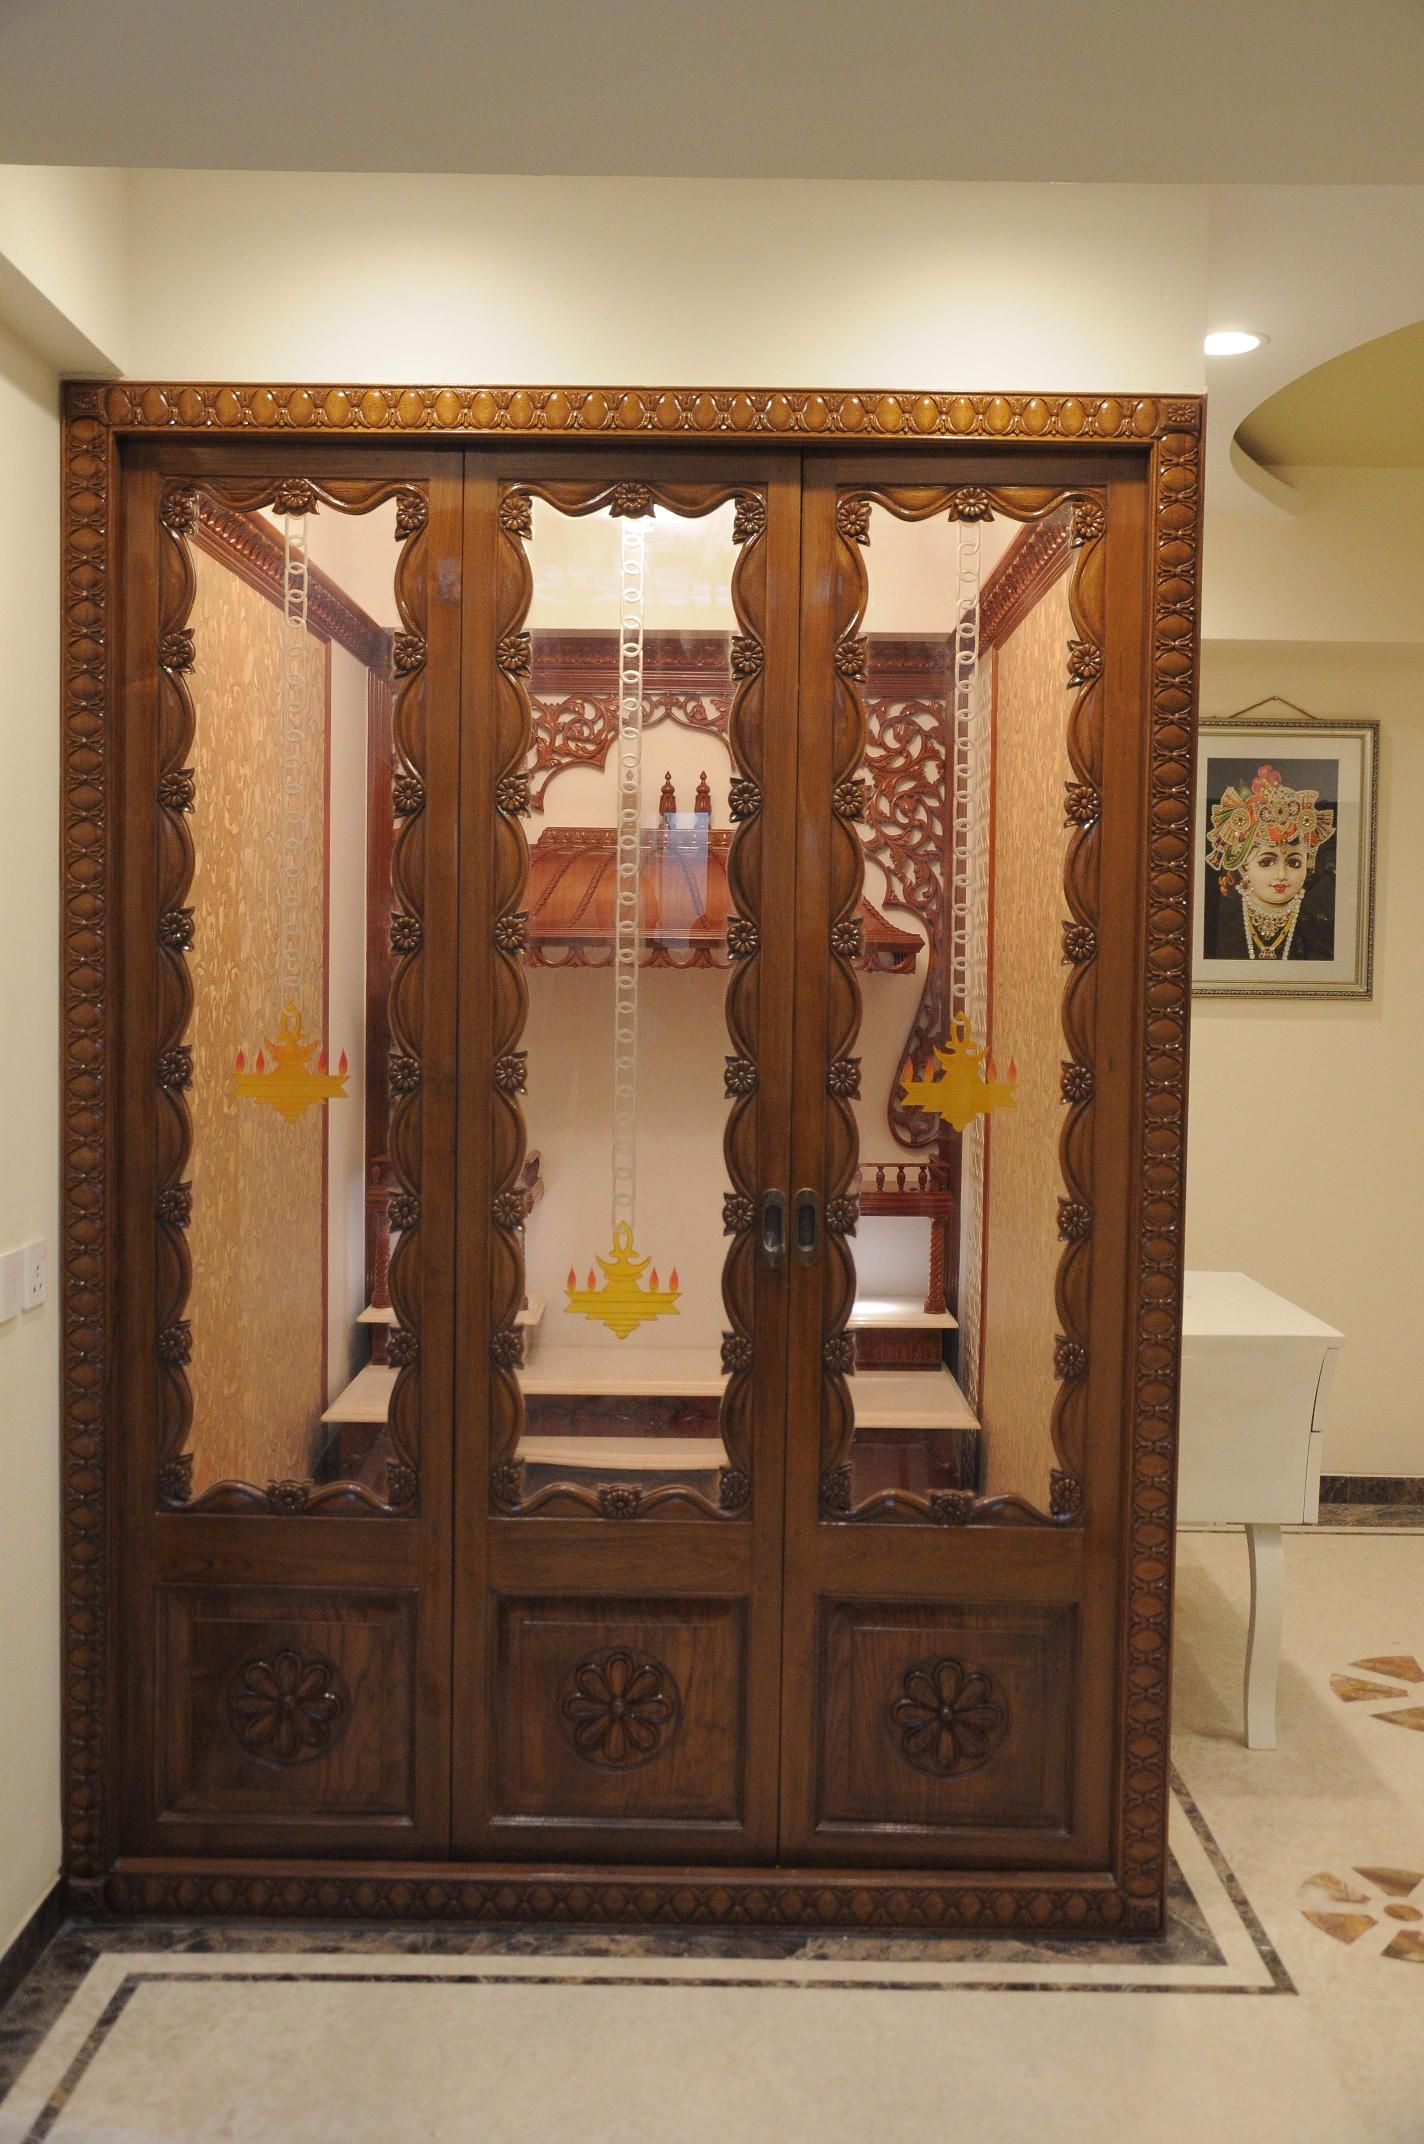 Pooja Room Door Designs Pooja Room: Internal Affairs Interior Designers